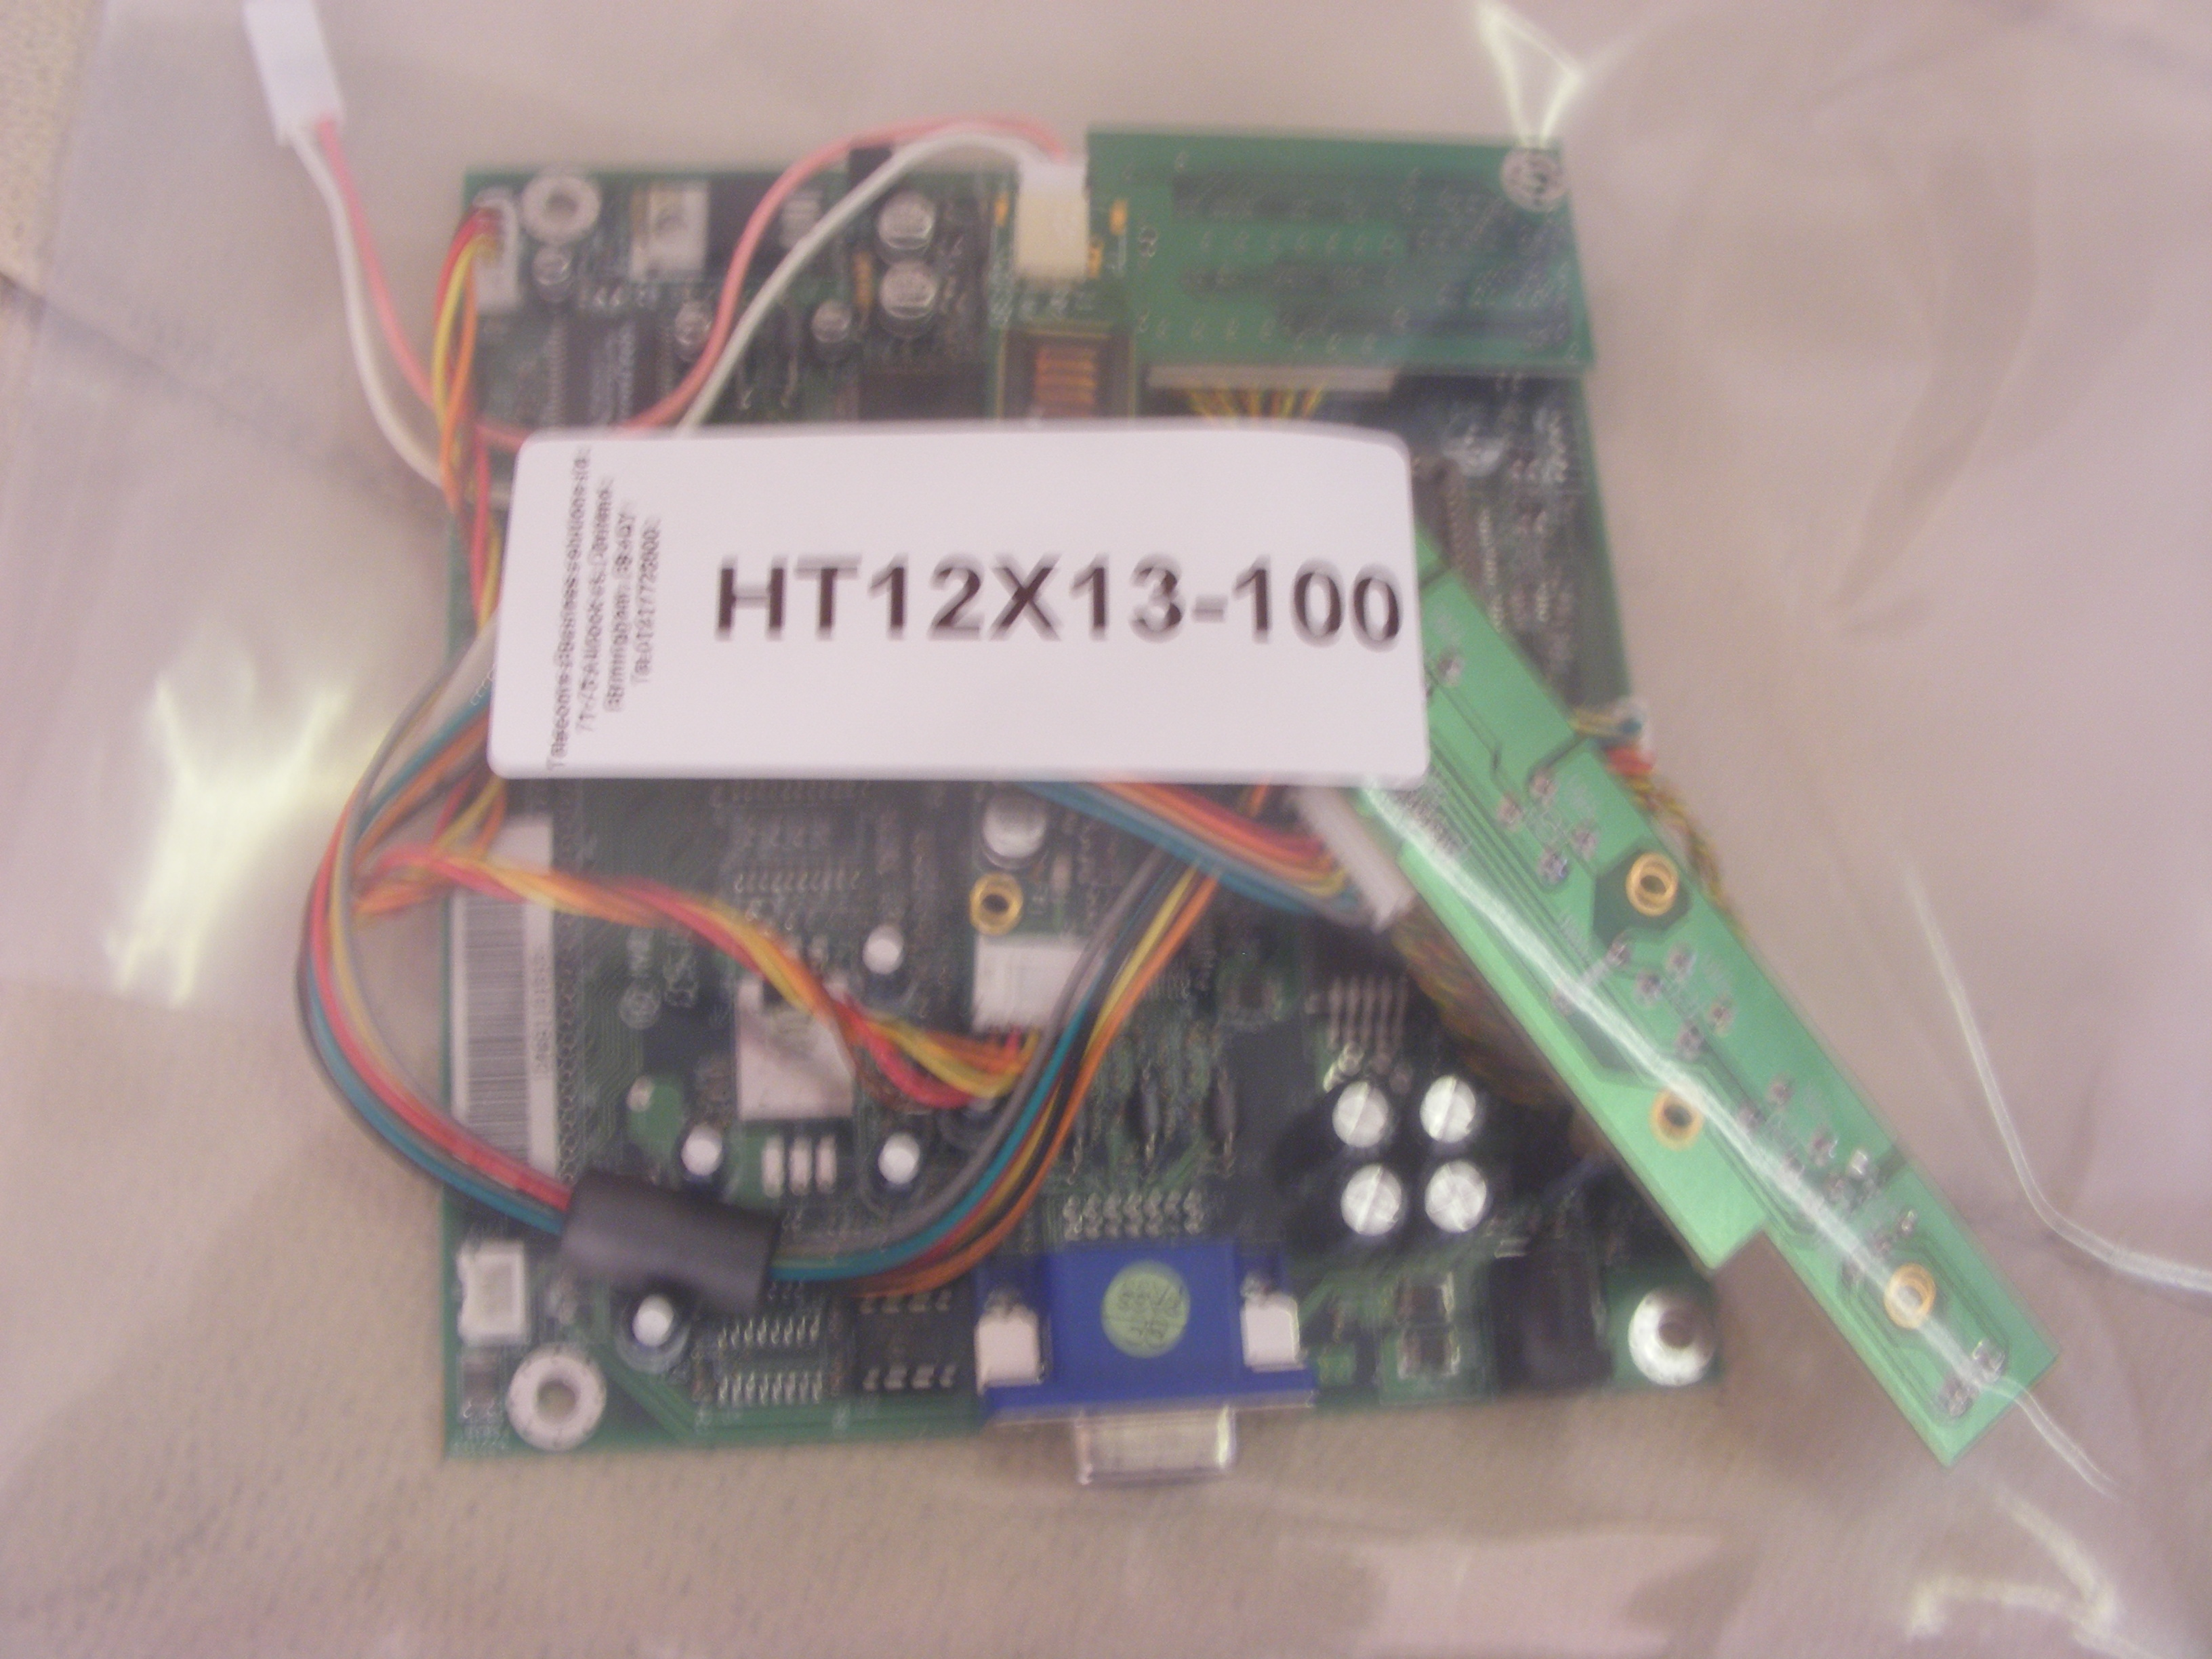 Ad board and inverter for ht12x13-100 and others